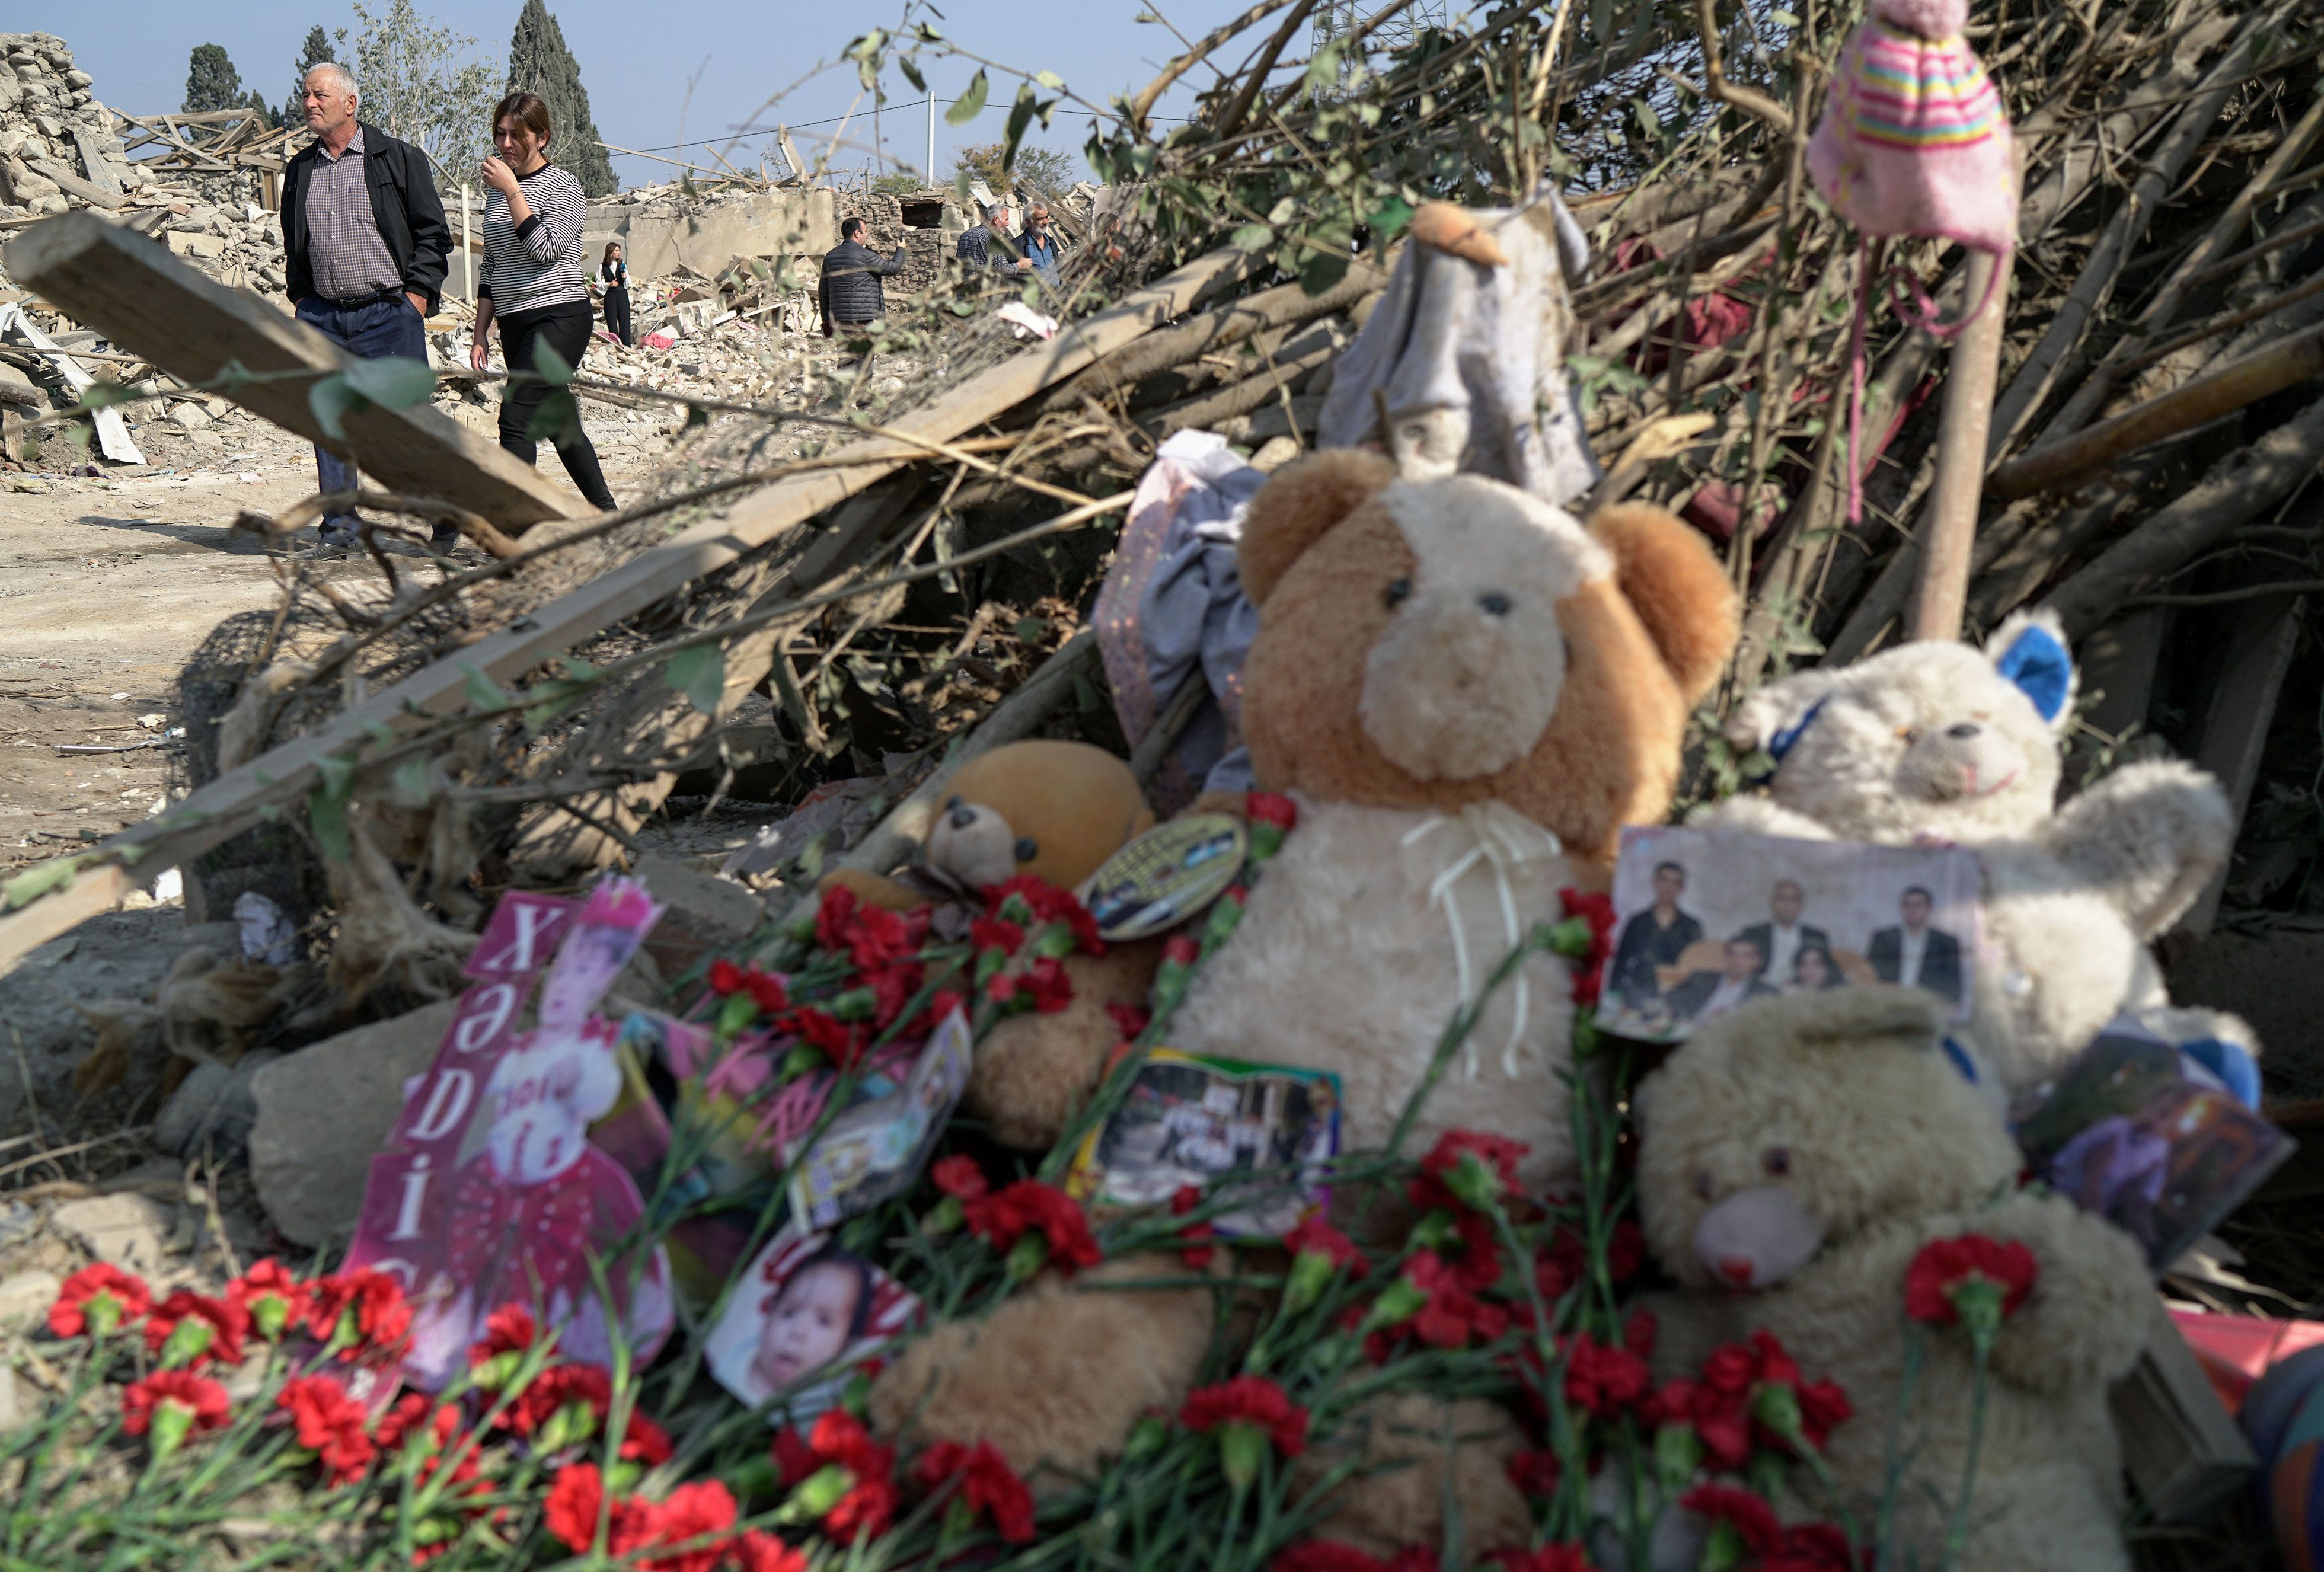 Carnations, teddy bears and pictures are laid to the blast site hit by a rocket attack in the city of Ganja, Azerbaijan. Reuters